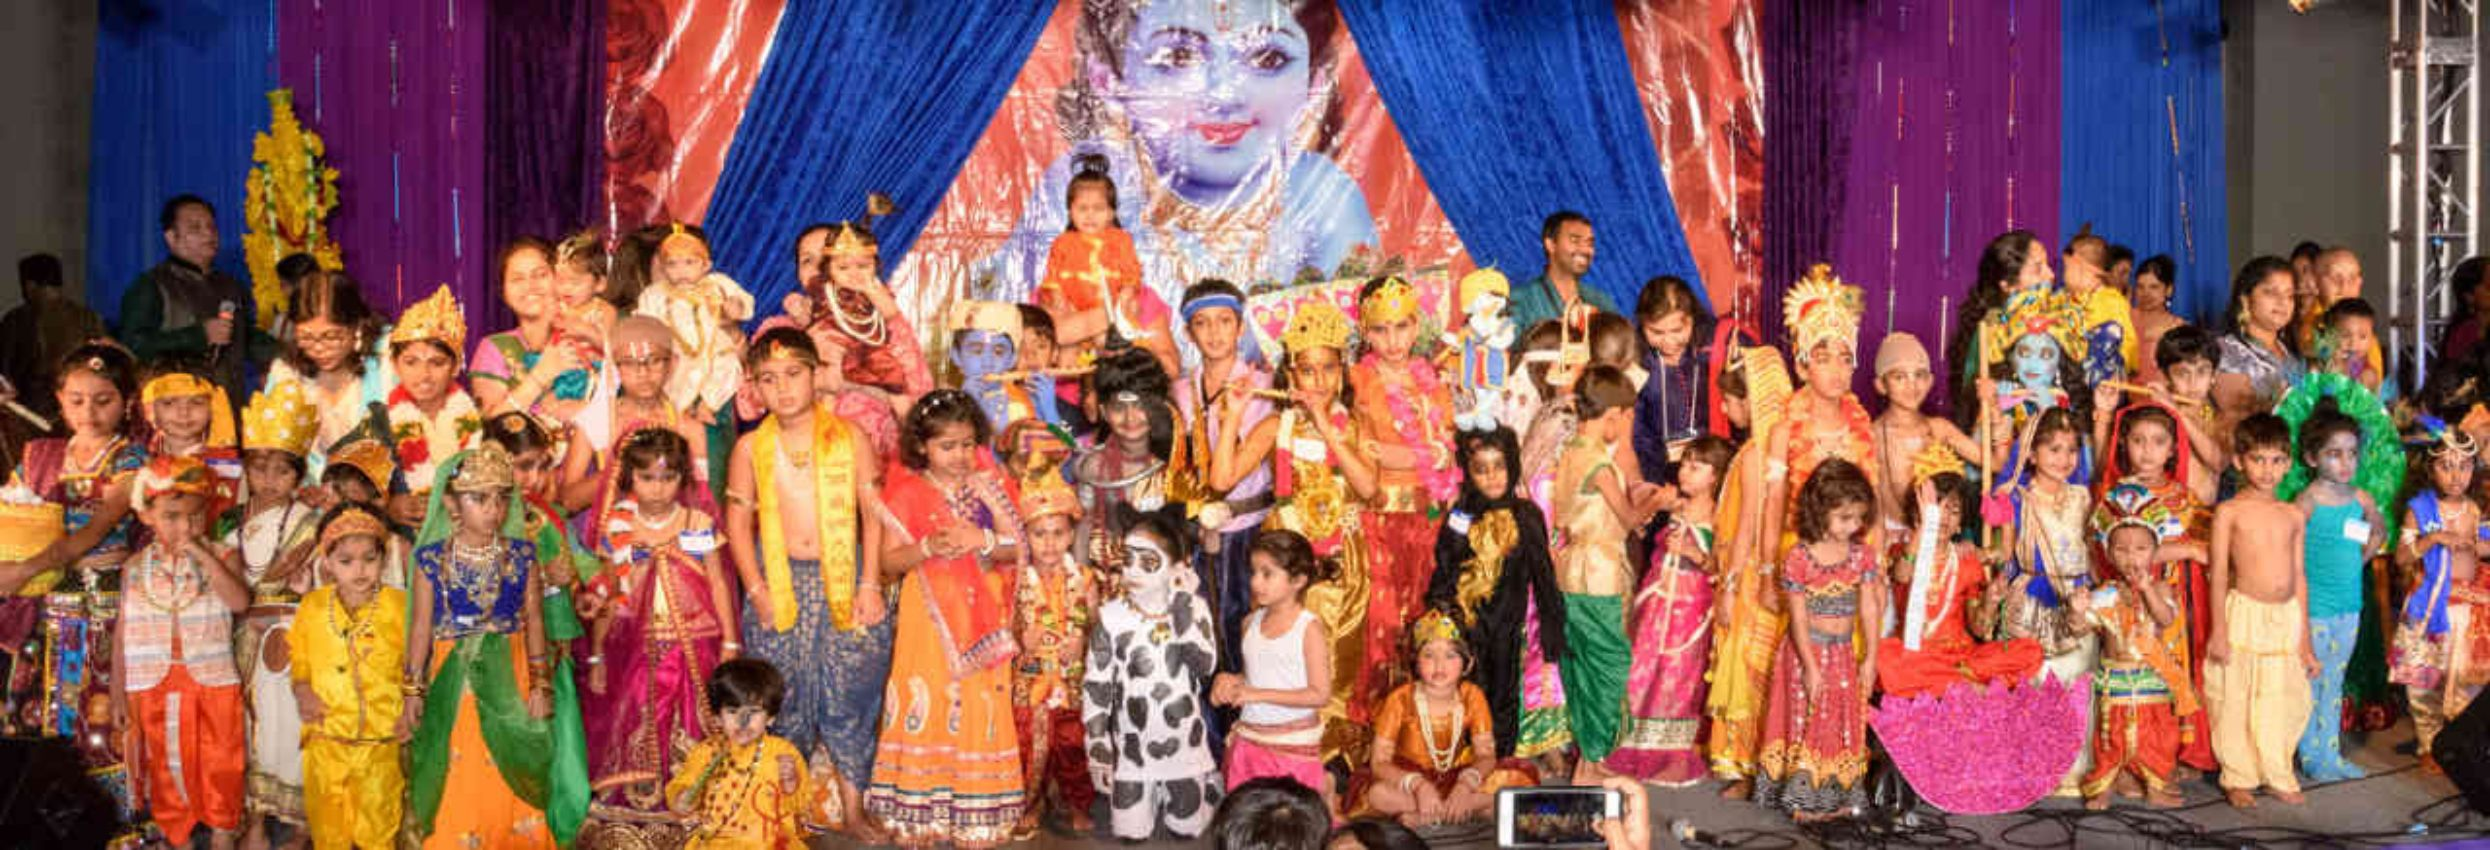 Sri Krishna Janmashtami Children Costume Contest